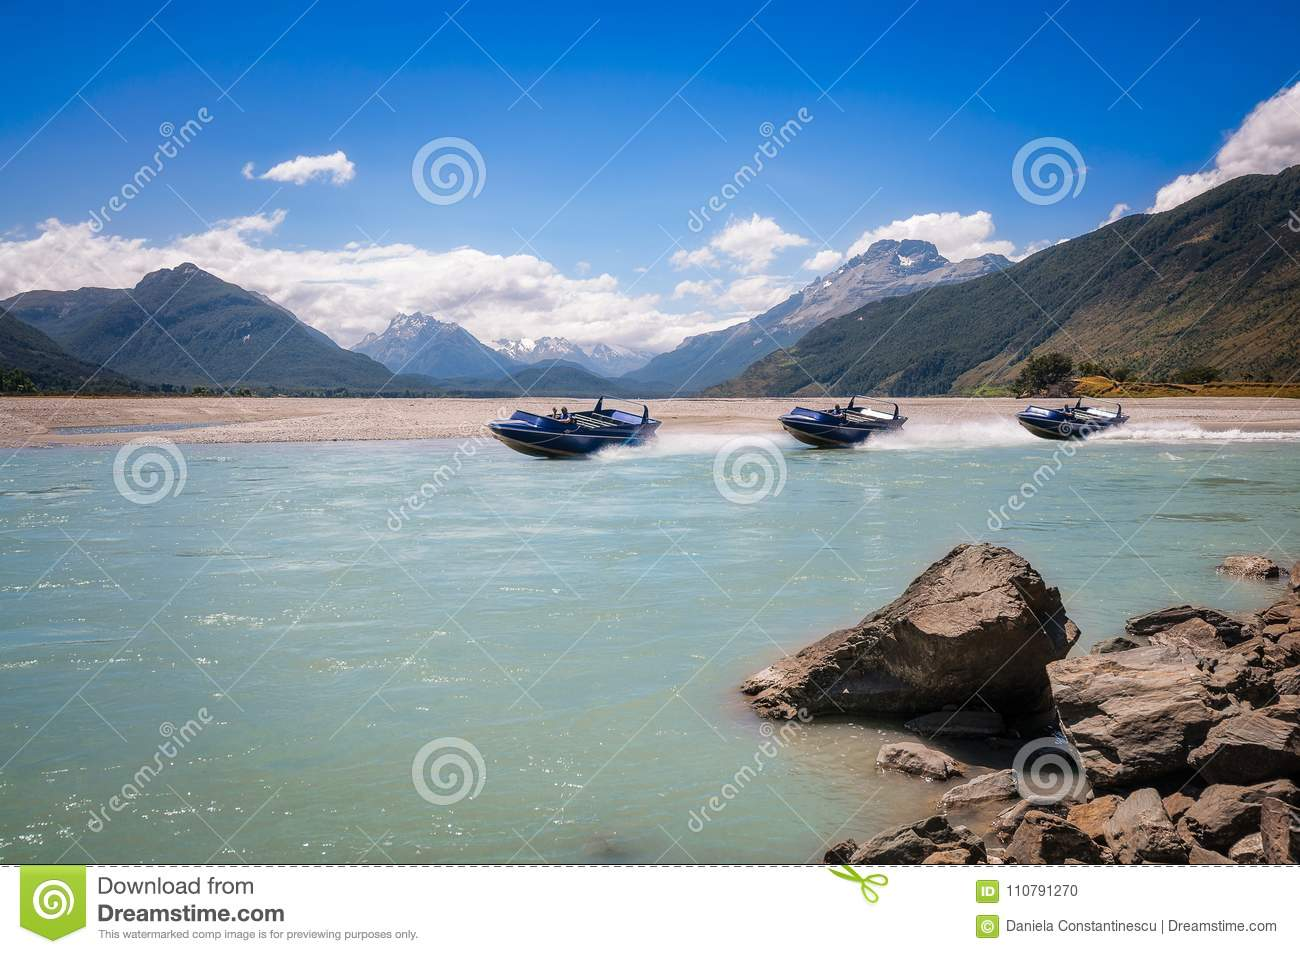 A motorboat on Dart River at Isengard lookout in New Zealand